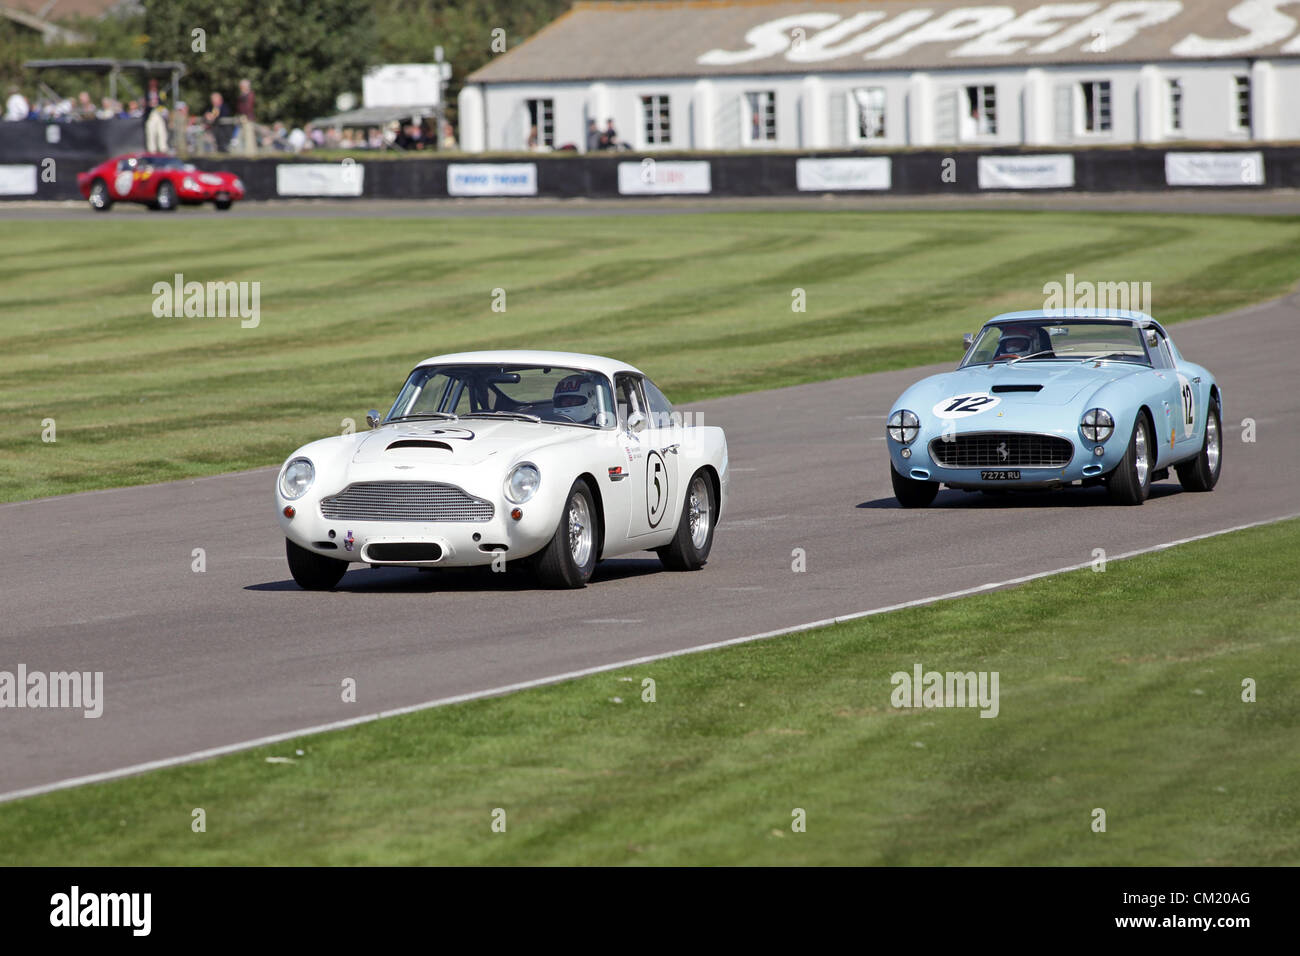 Goodwood Estate, Chichester, UK. 15th September 2012. 1960 Aston Martin DB4GT and Ferrari 250 GTO SWB/C pictured - Stock Image